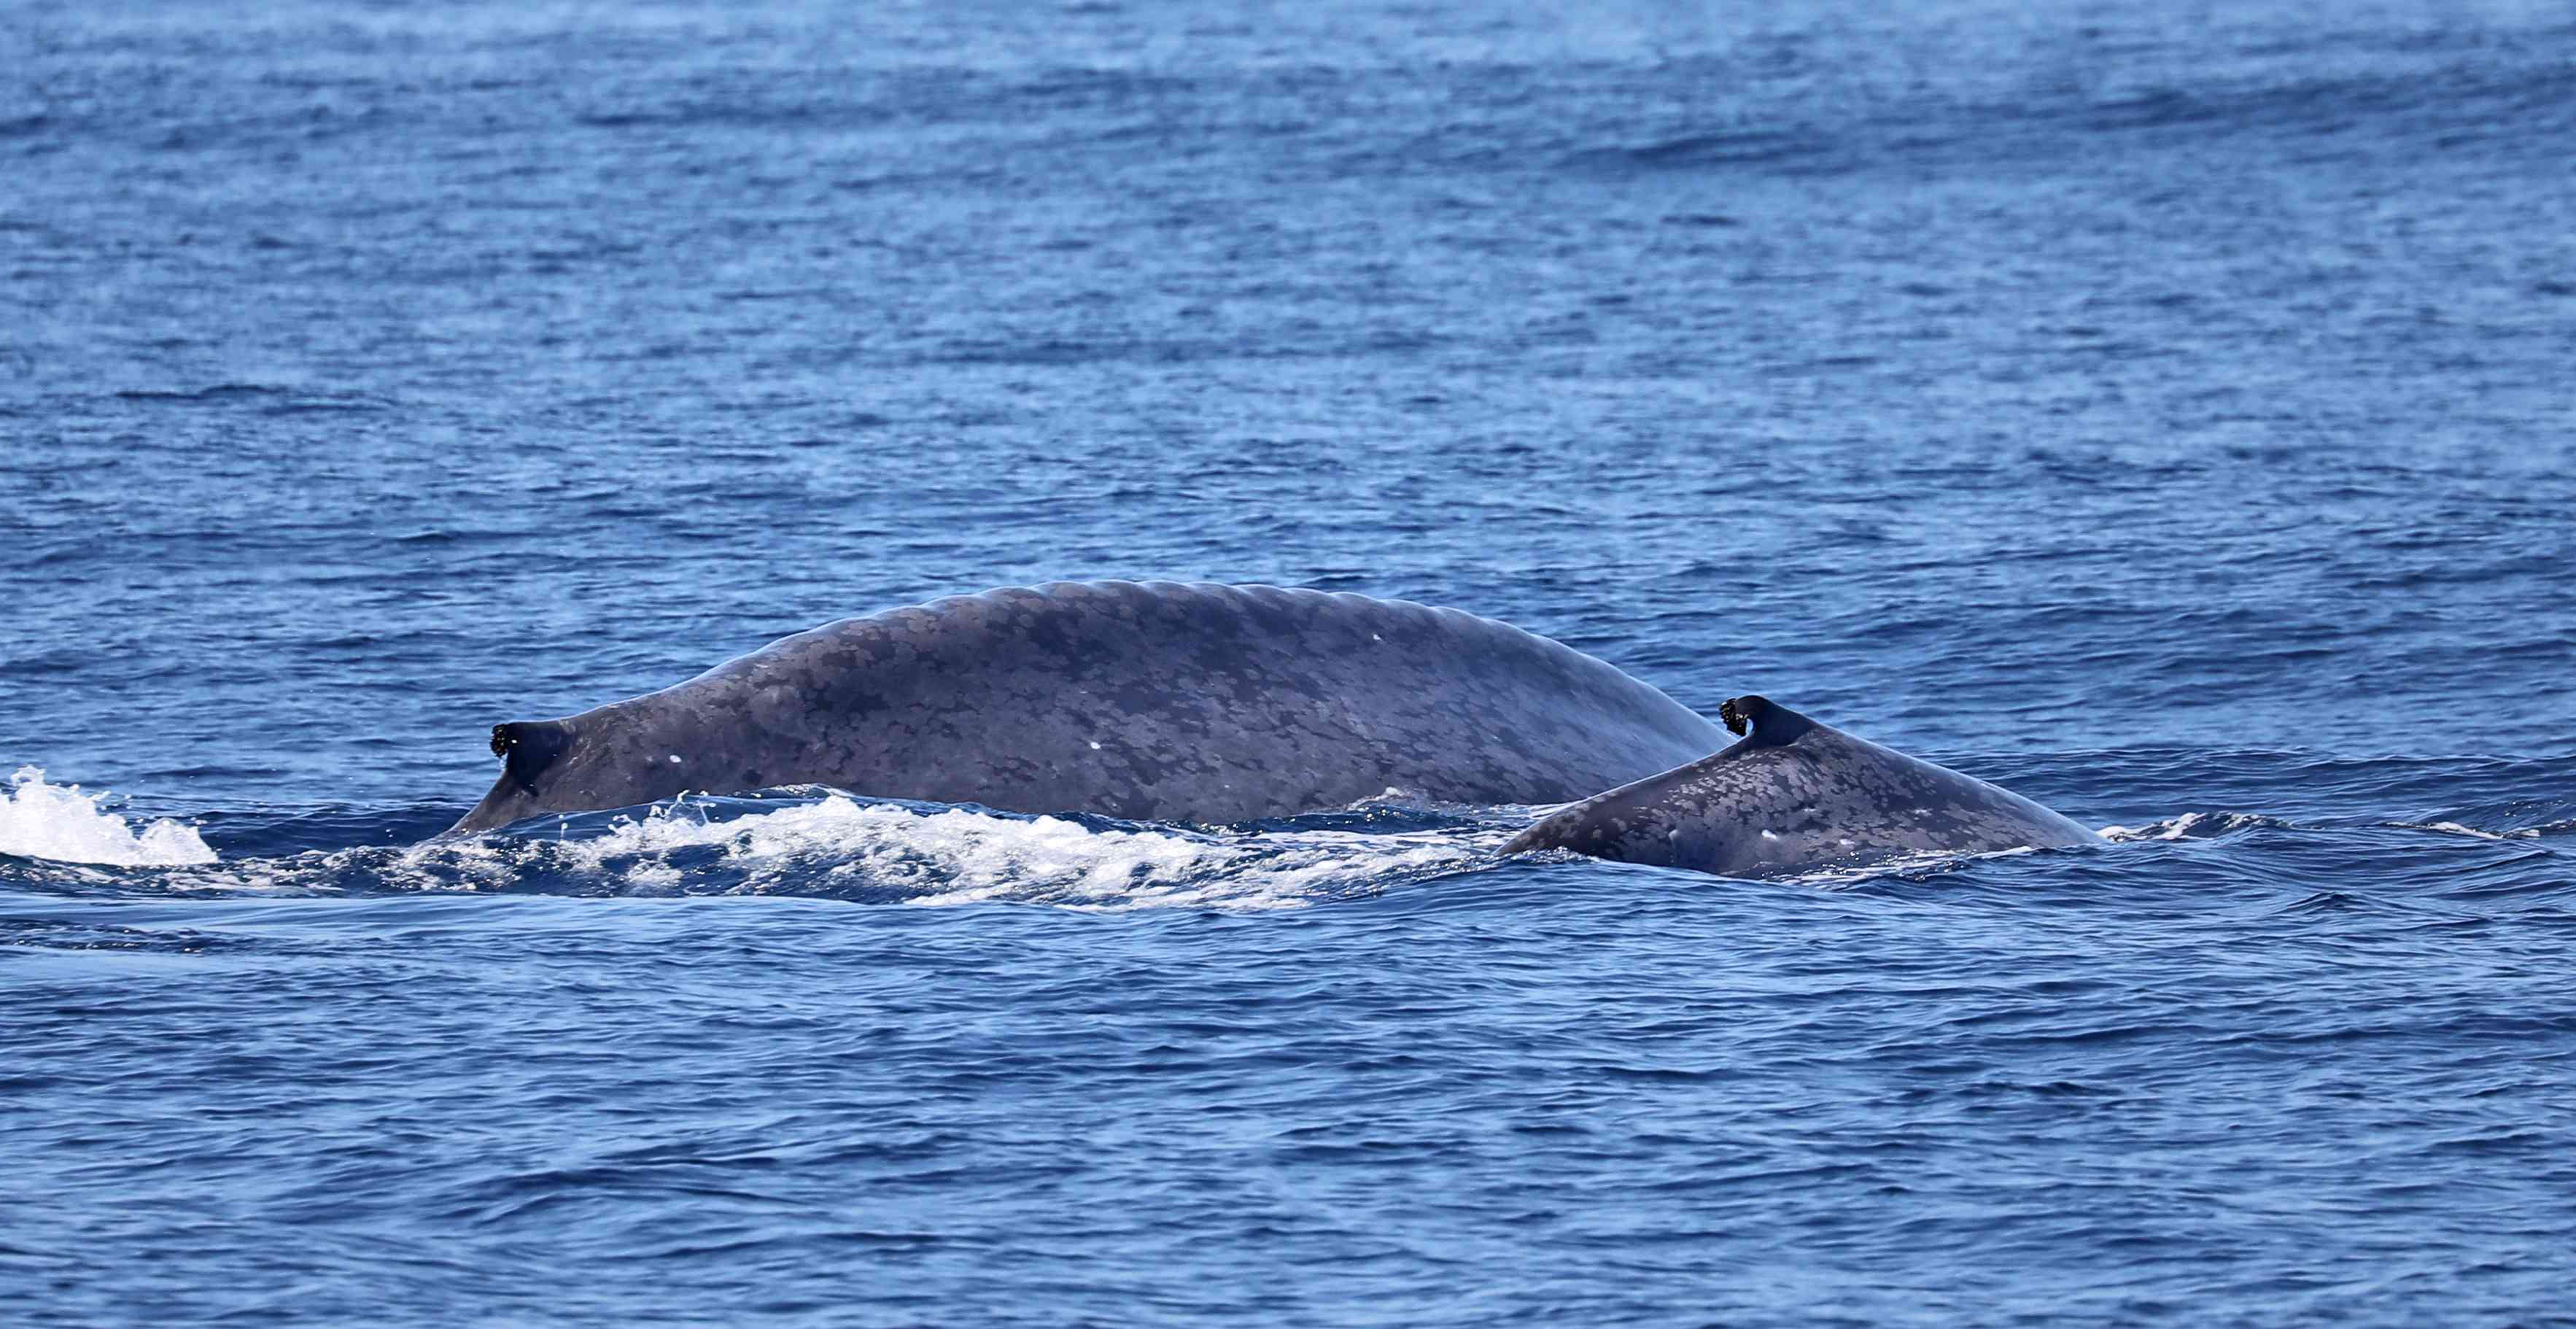 A blue whale calf with its mother